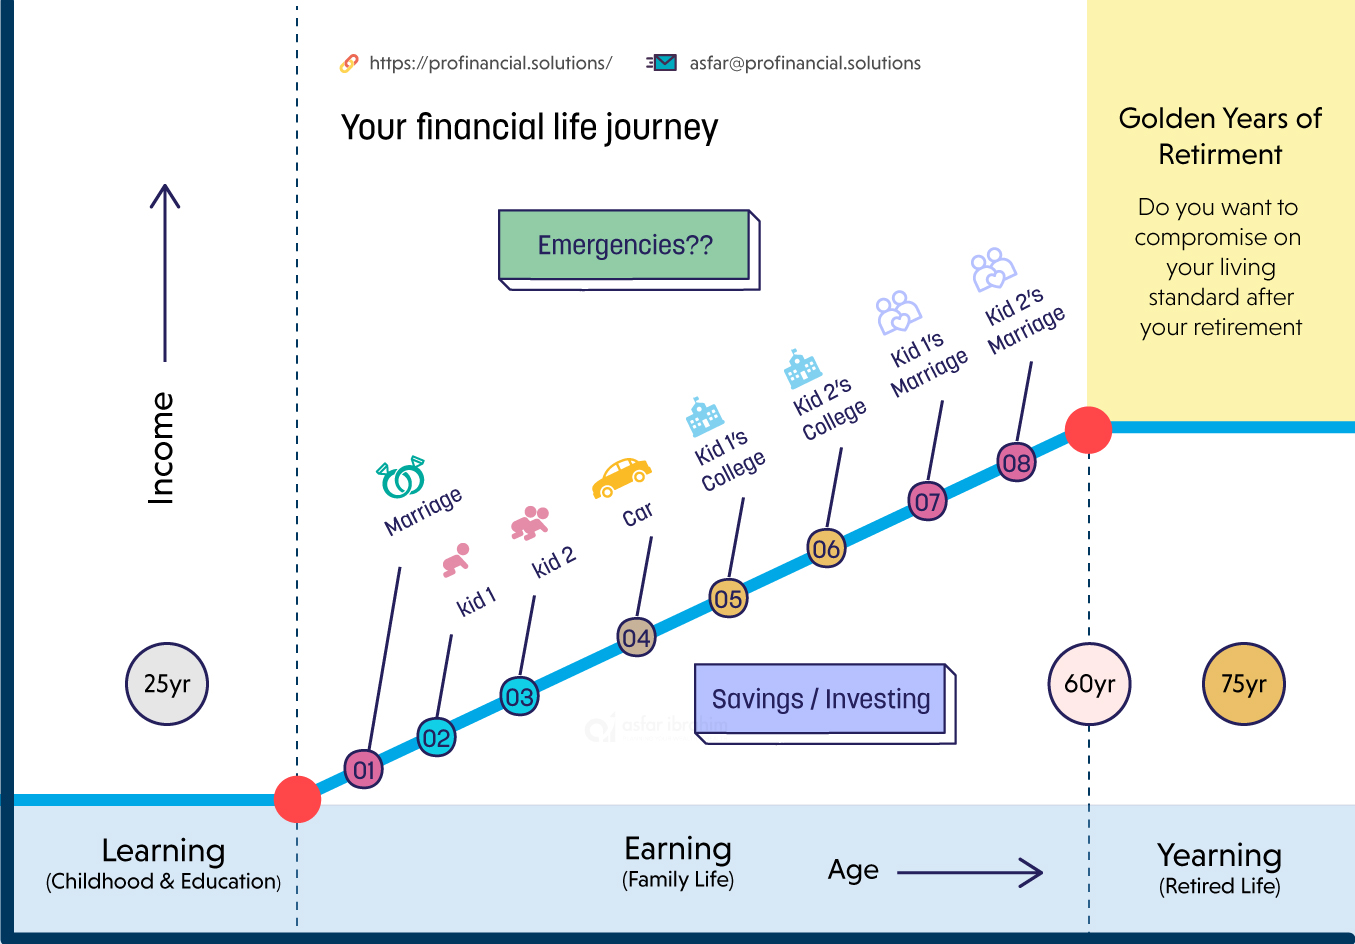 financial advisor graph for showing financial life journey